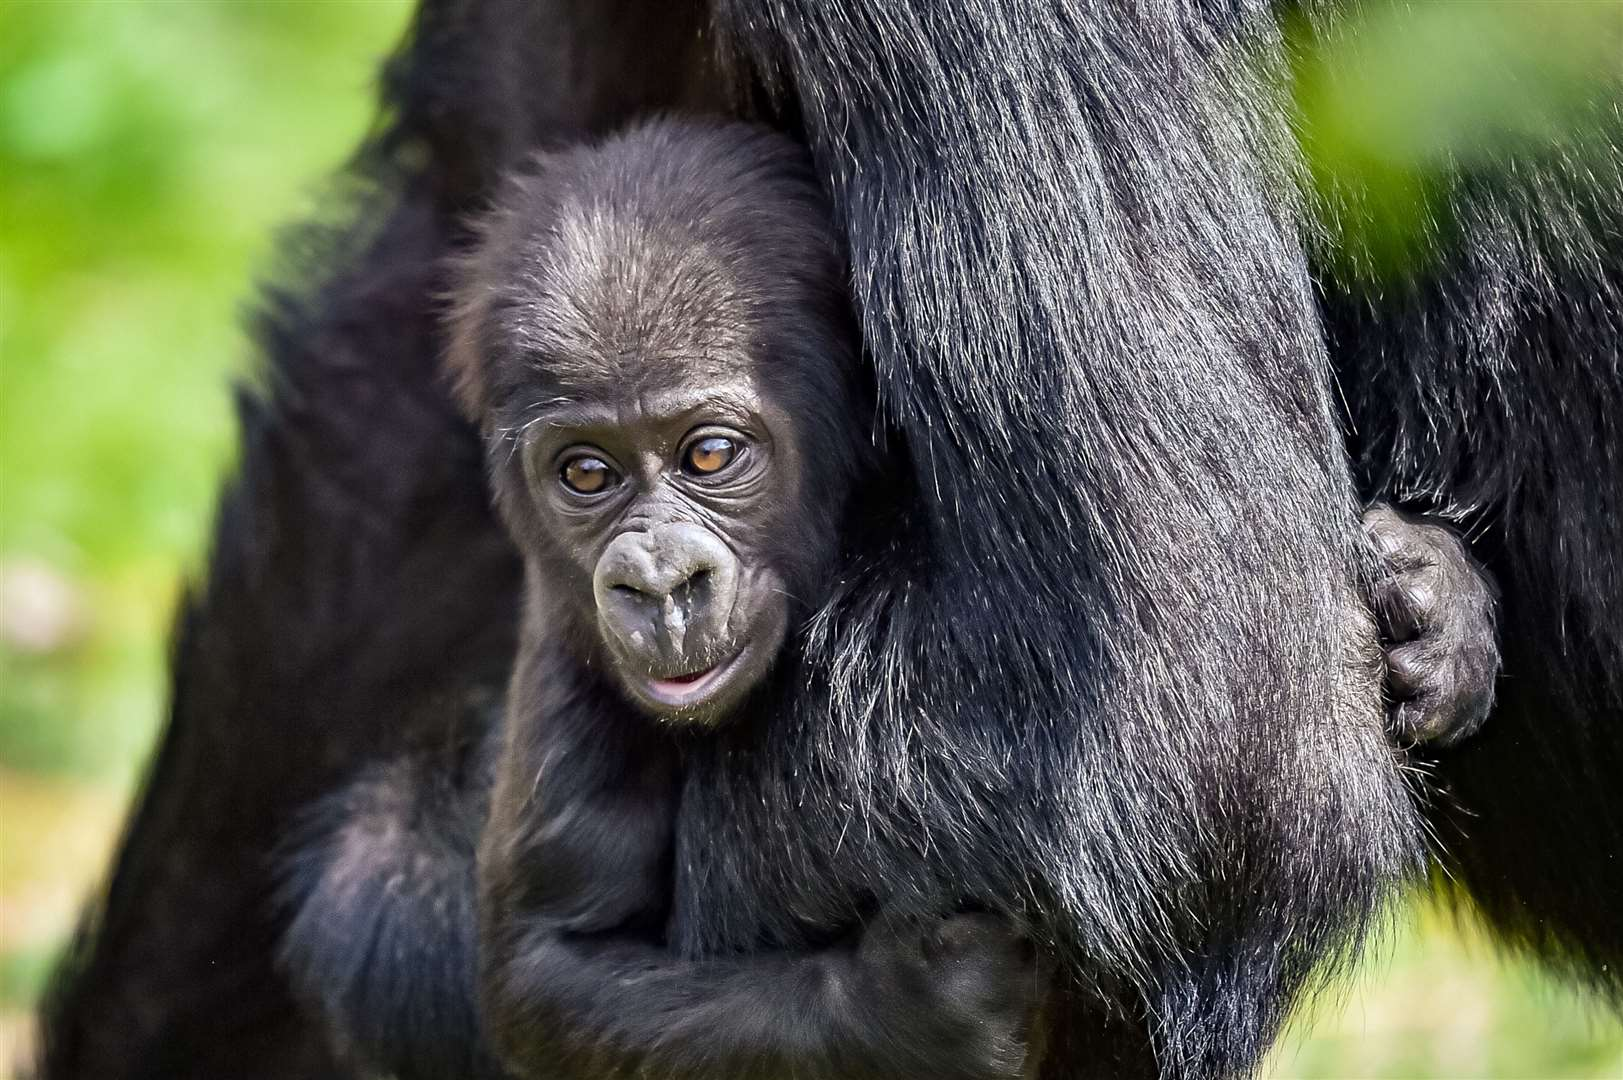 The baby gorilla will soon be learning how to walk and crawl (Ben Birchall/PA)